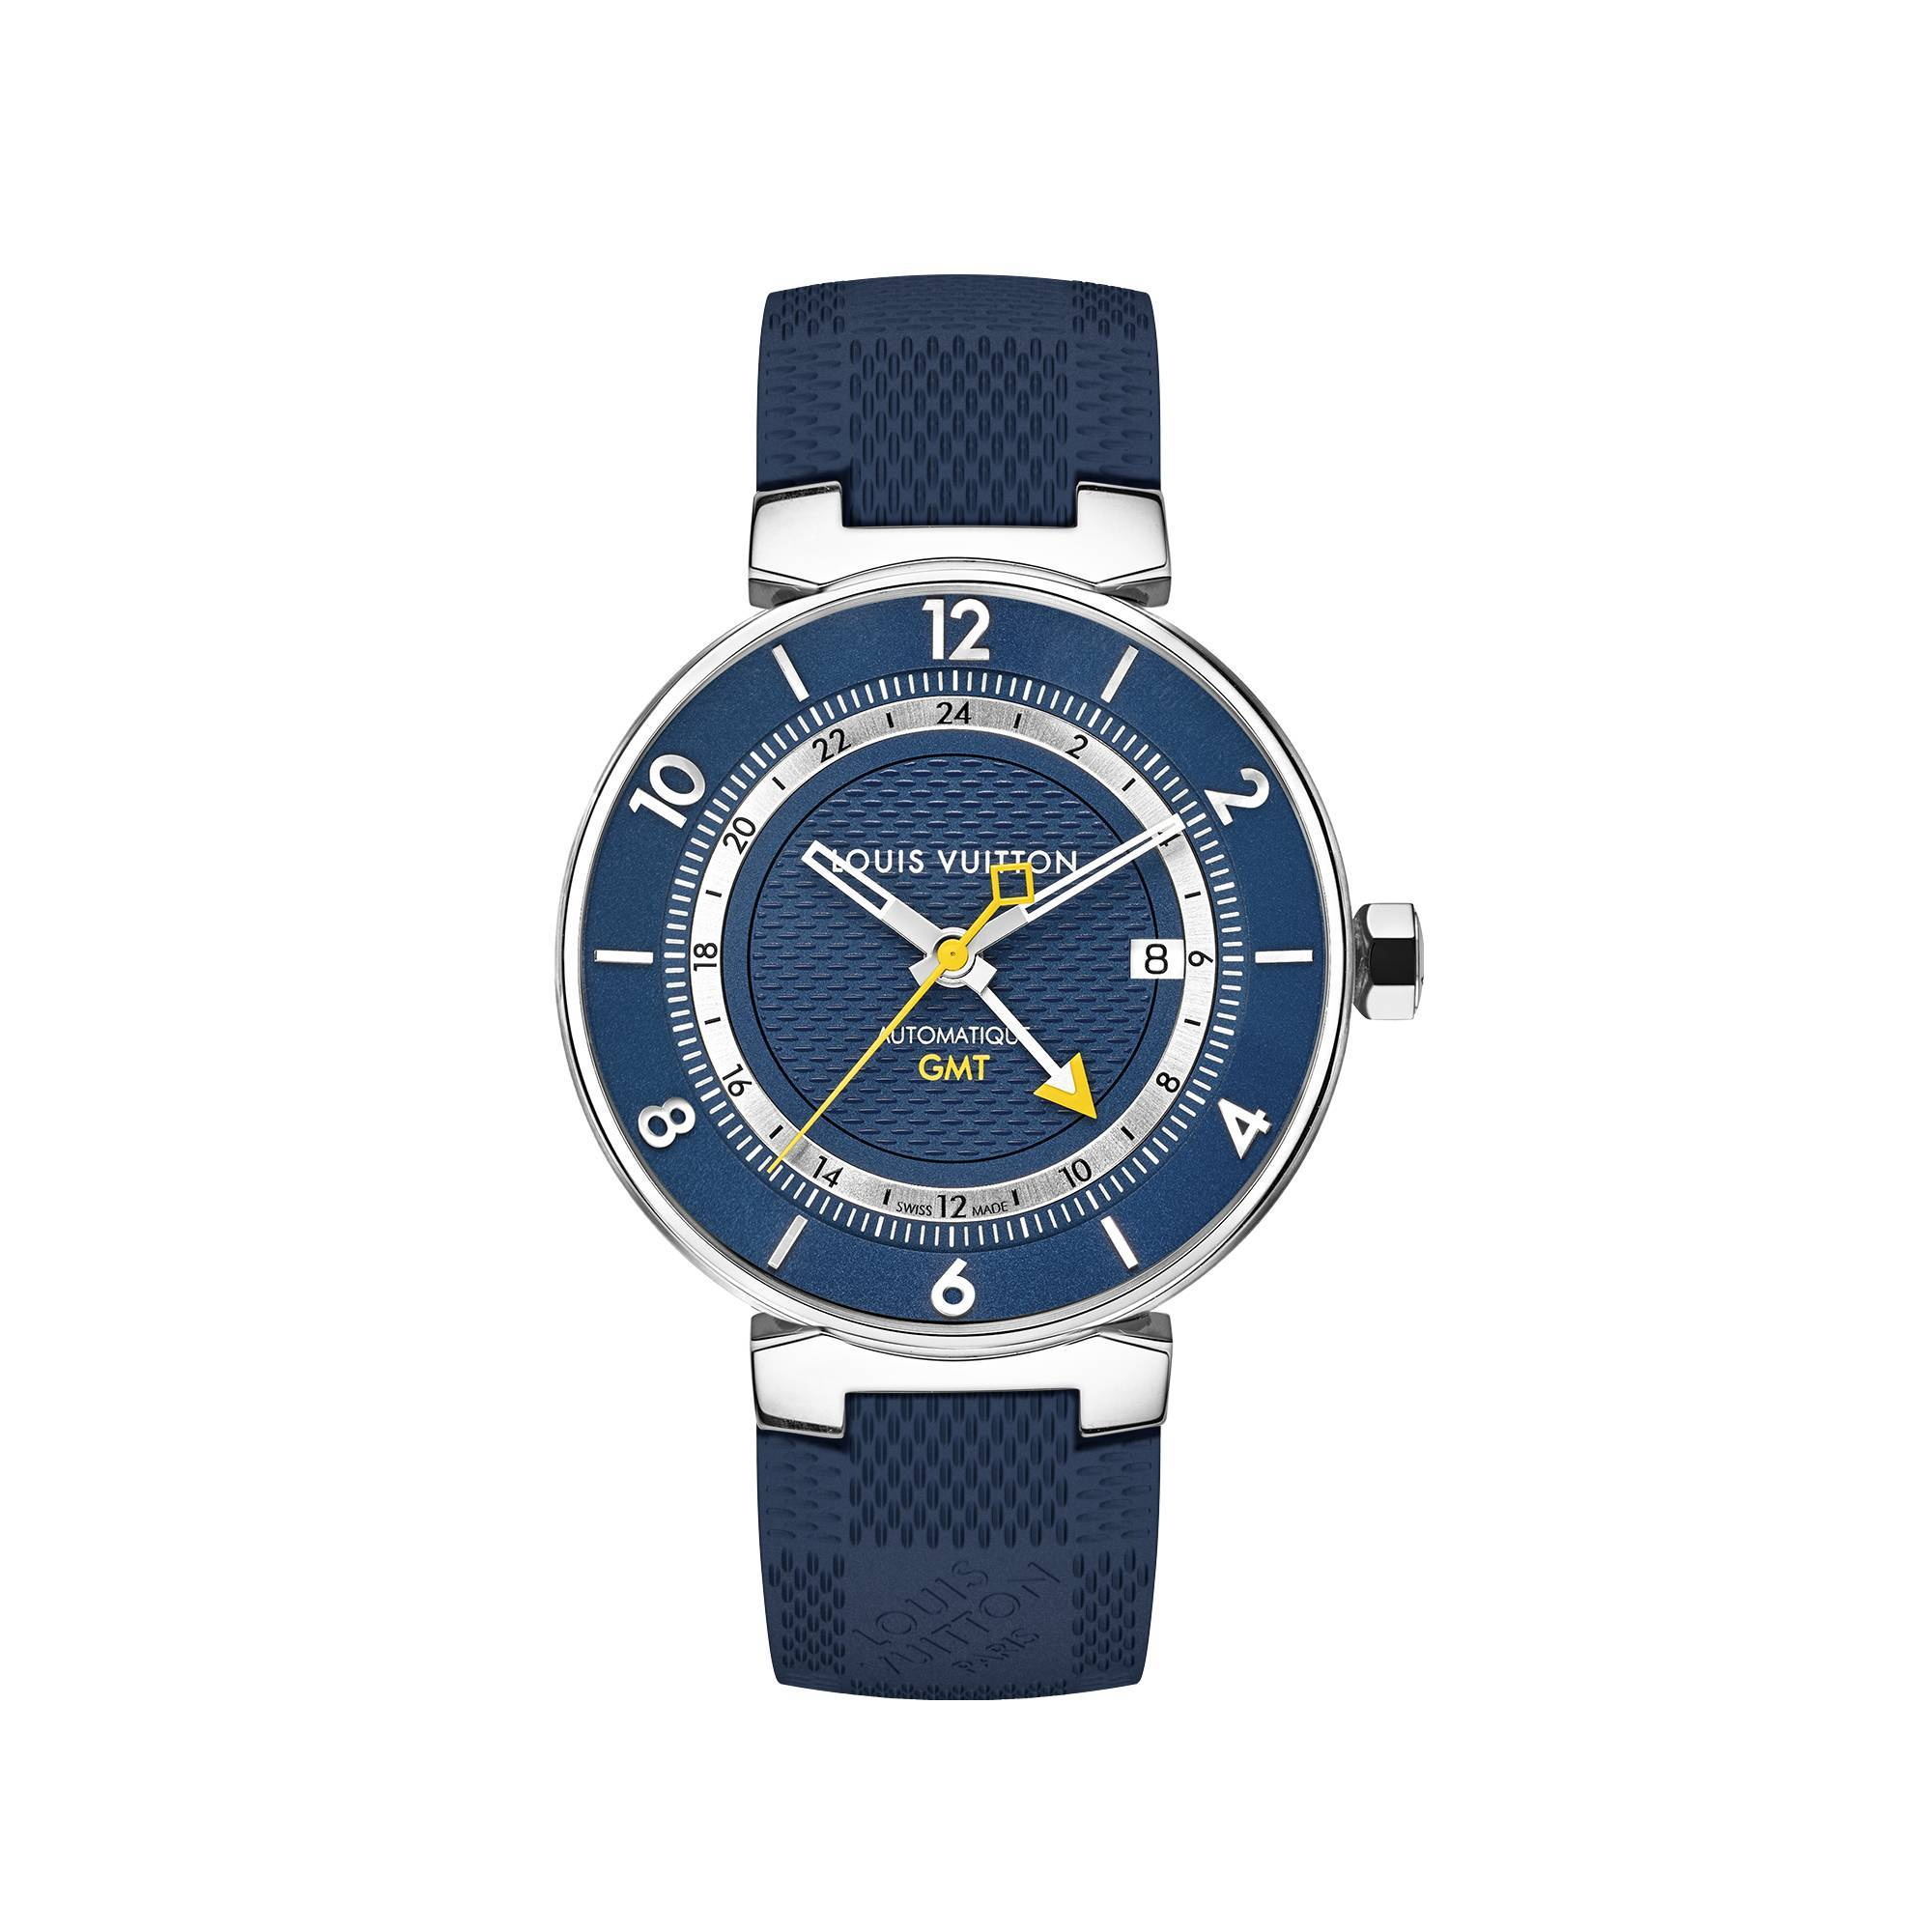 10 Timepieces by Louis Vuitton for Men with a Luxury Lifestyle Louis Vuitton 10 Timepieces by Louis Vuitton for Men with a Luxury Lifestyle 10 Timepieces by Louis Vuitton for Men with a Luxury Lifestyle 2